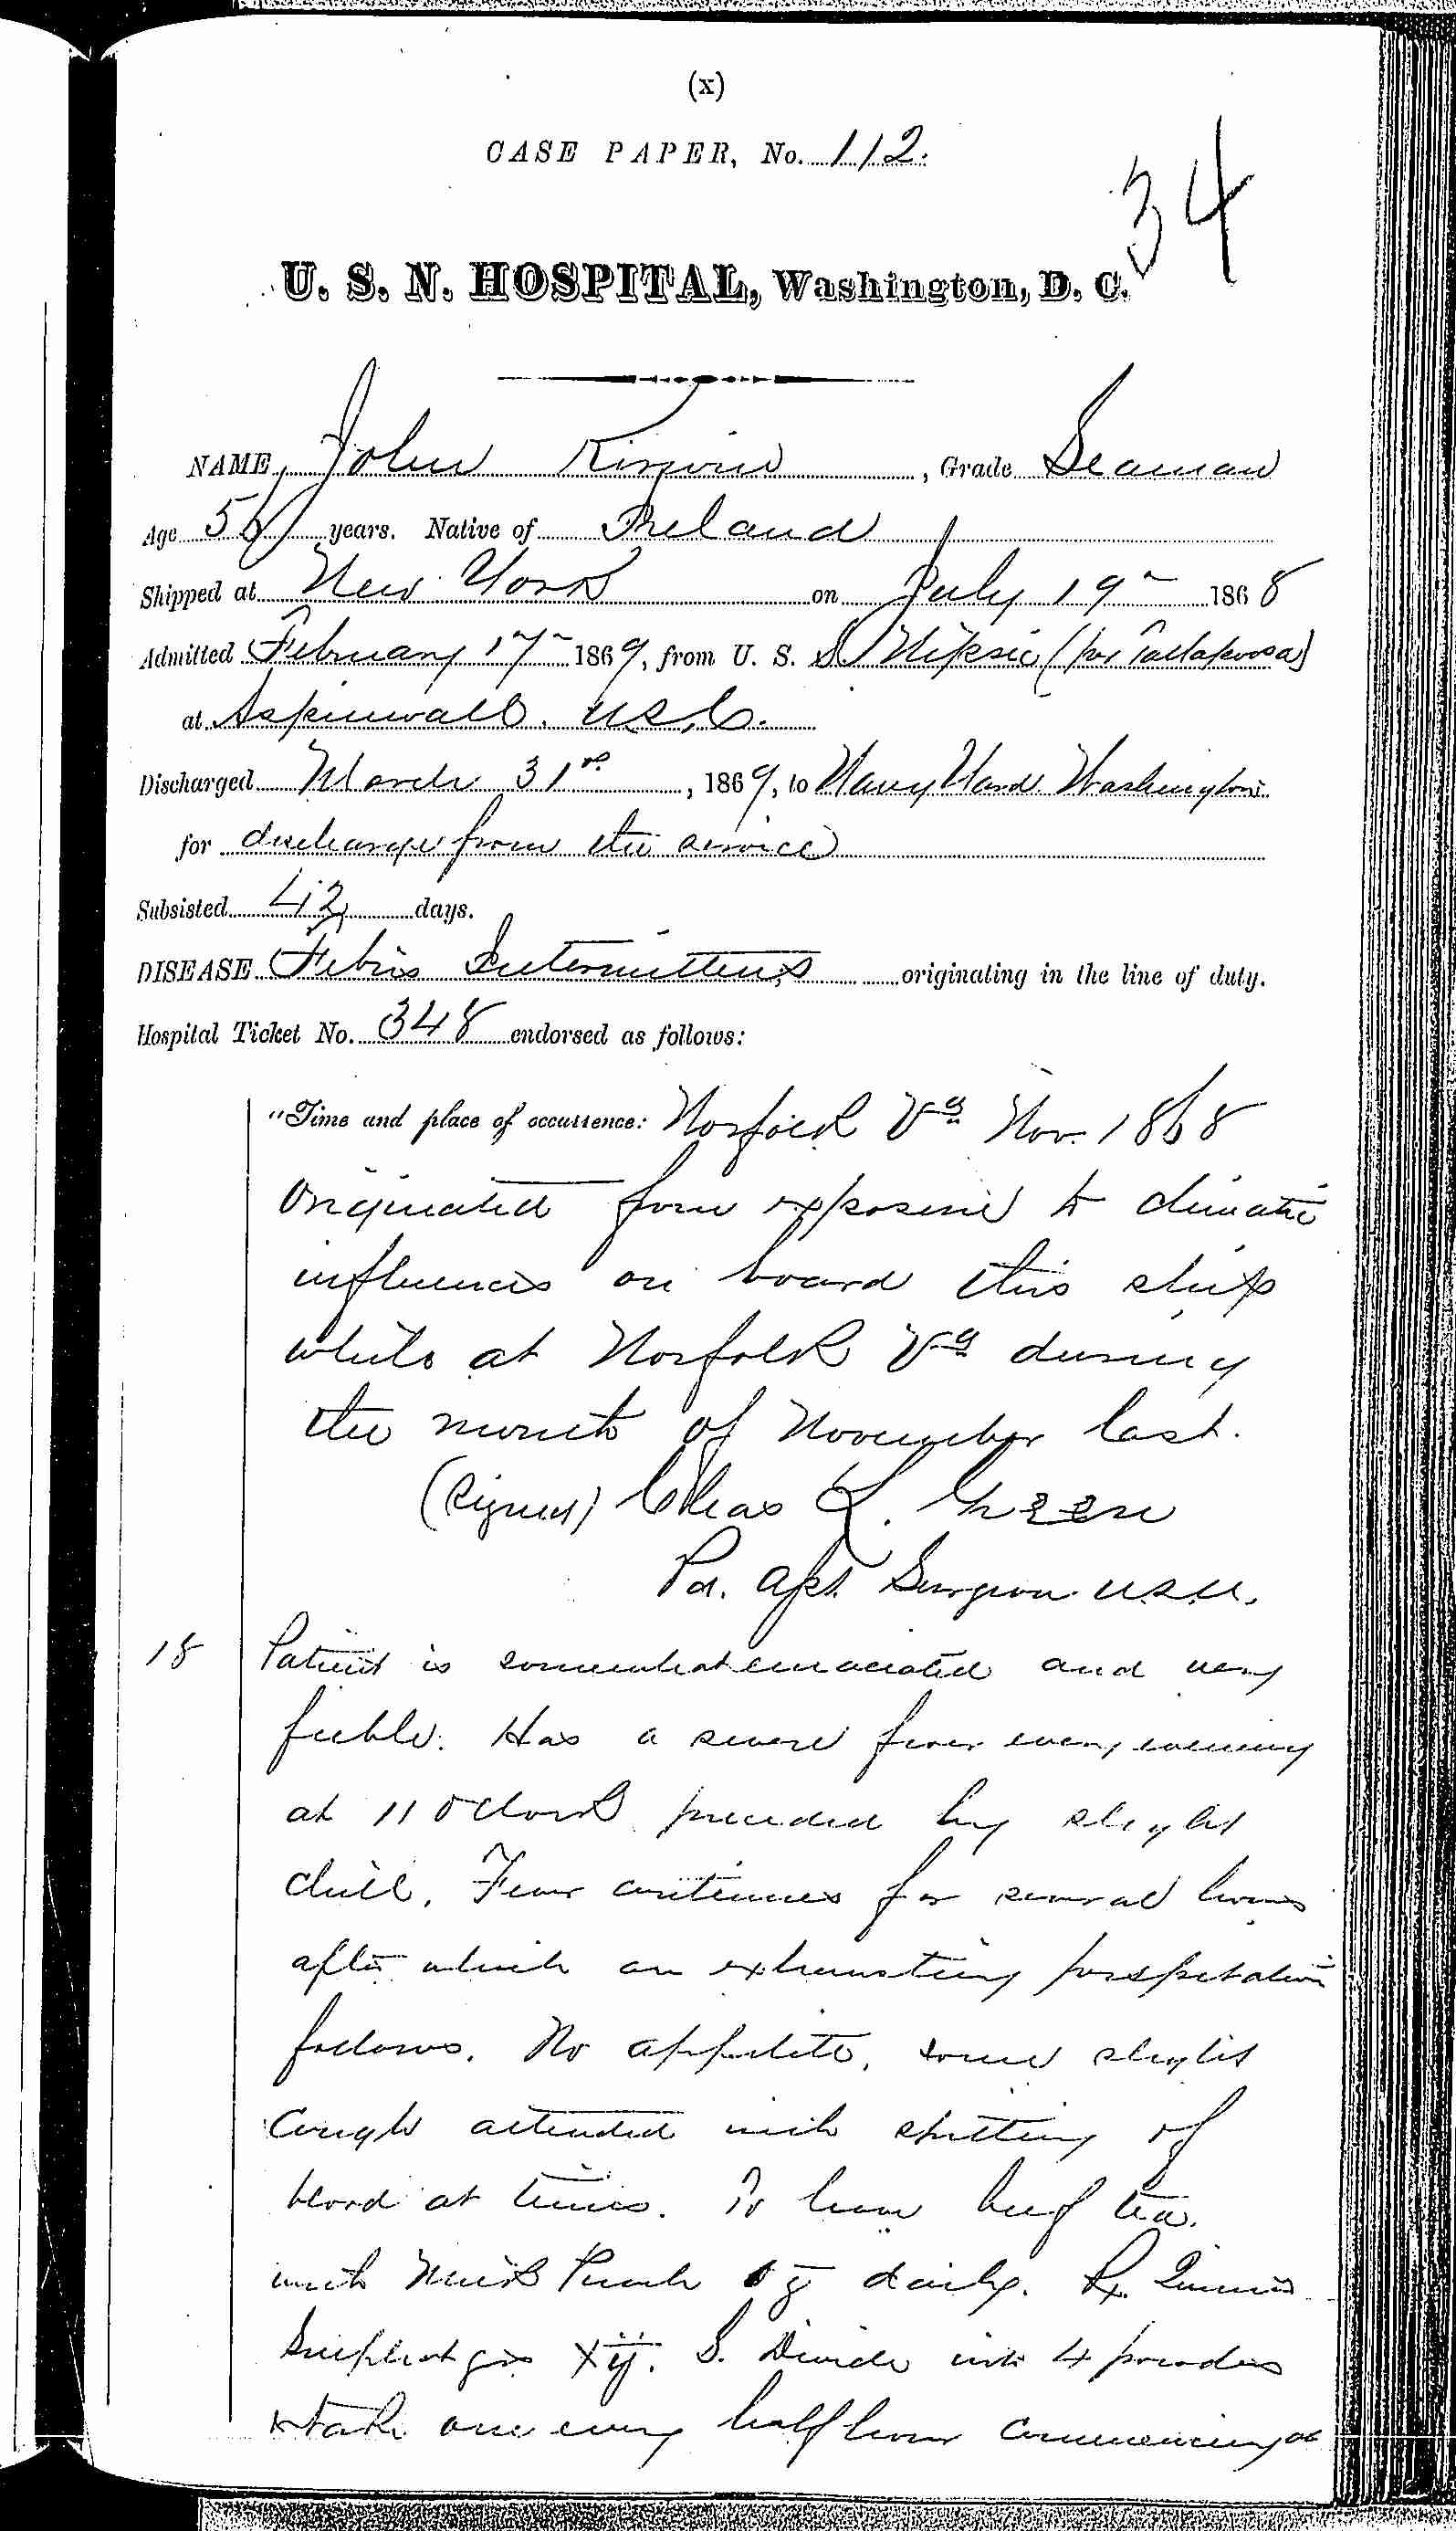 Entry for John Kerwin (page 1 of 3) in the log Hospital Tickets and Case Papers - Naval Hospital - Washington, D.C. - 1868-69